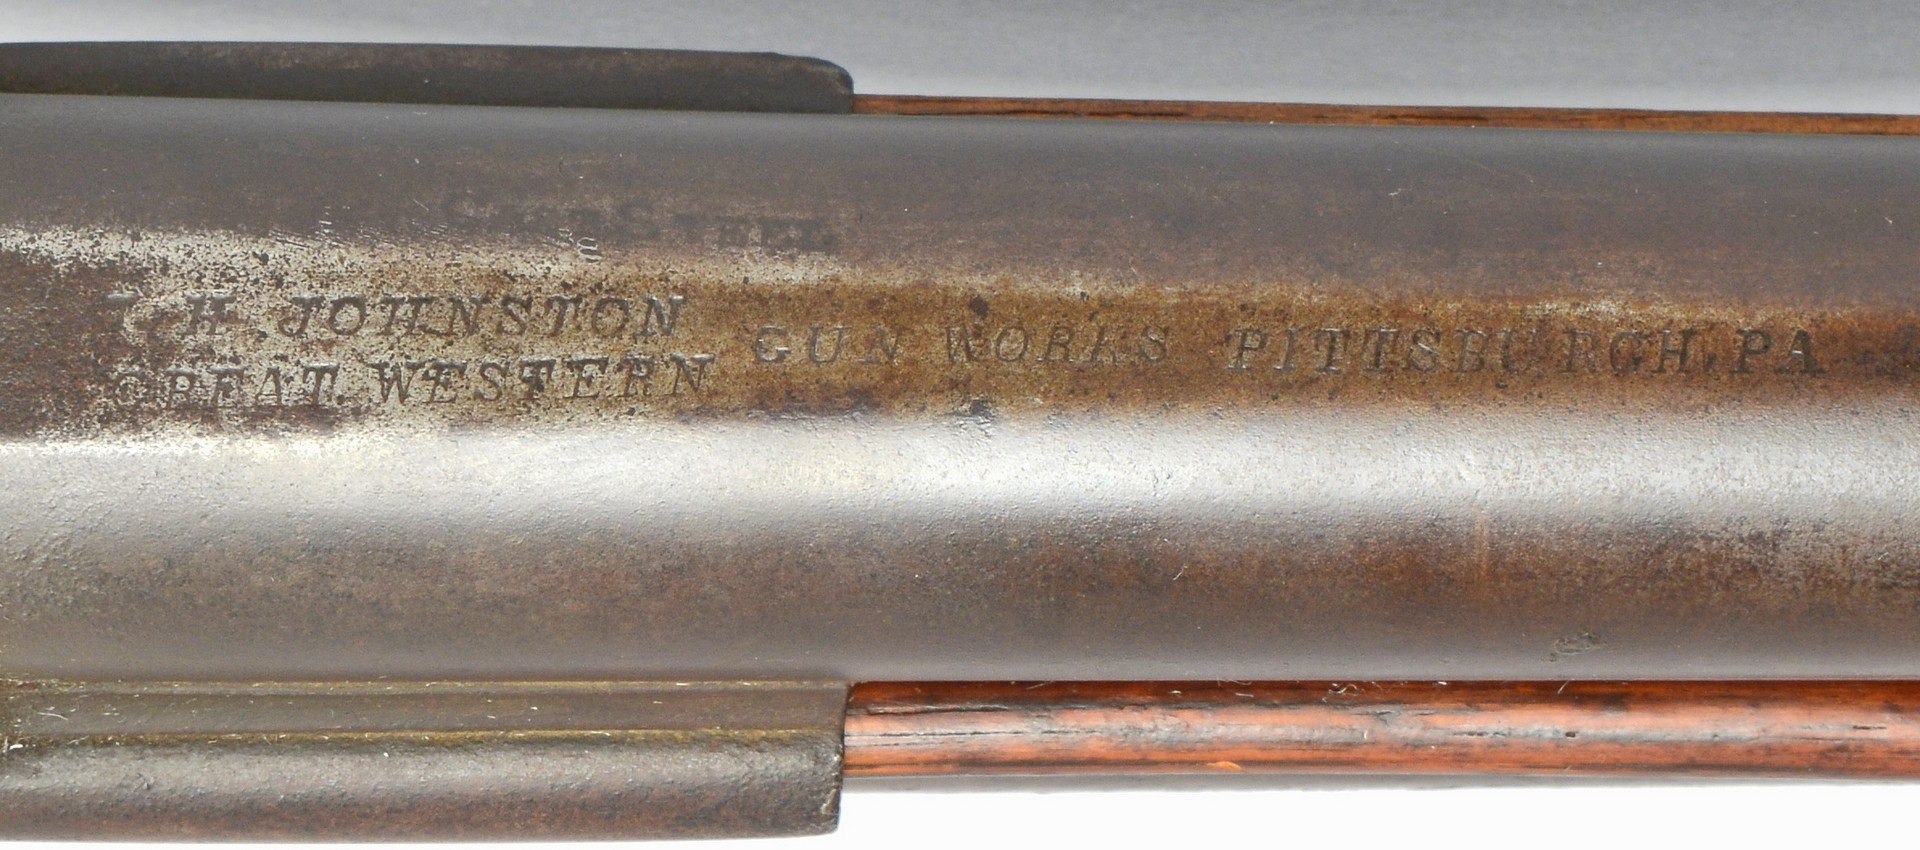 Lot 411: J. H. Johnston Rifle Over Shotgun Combination